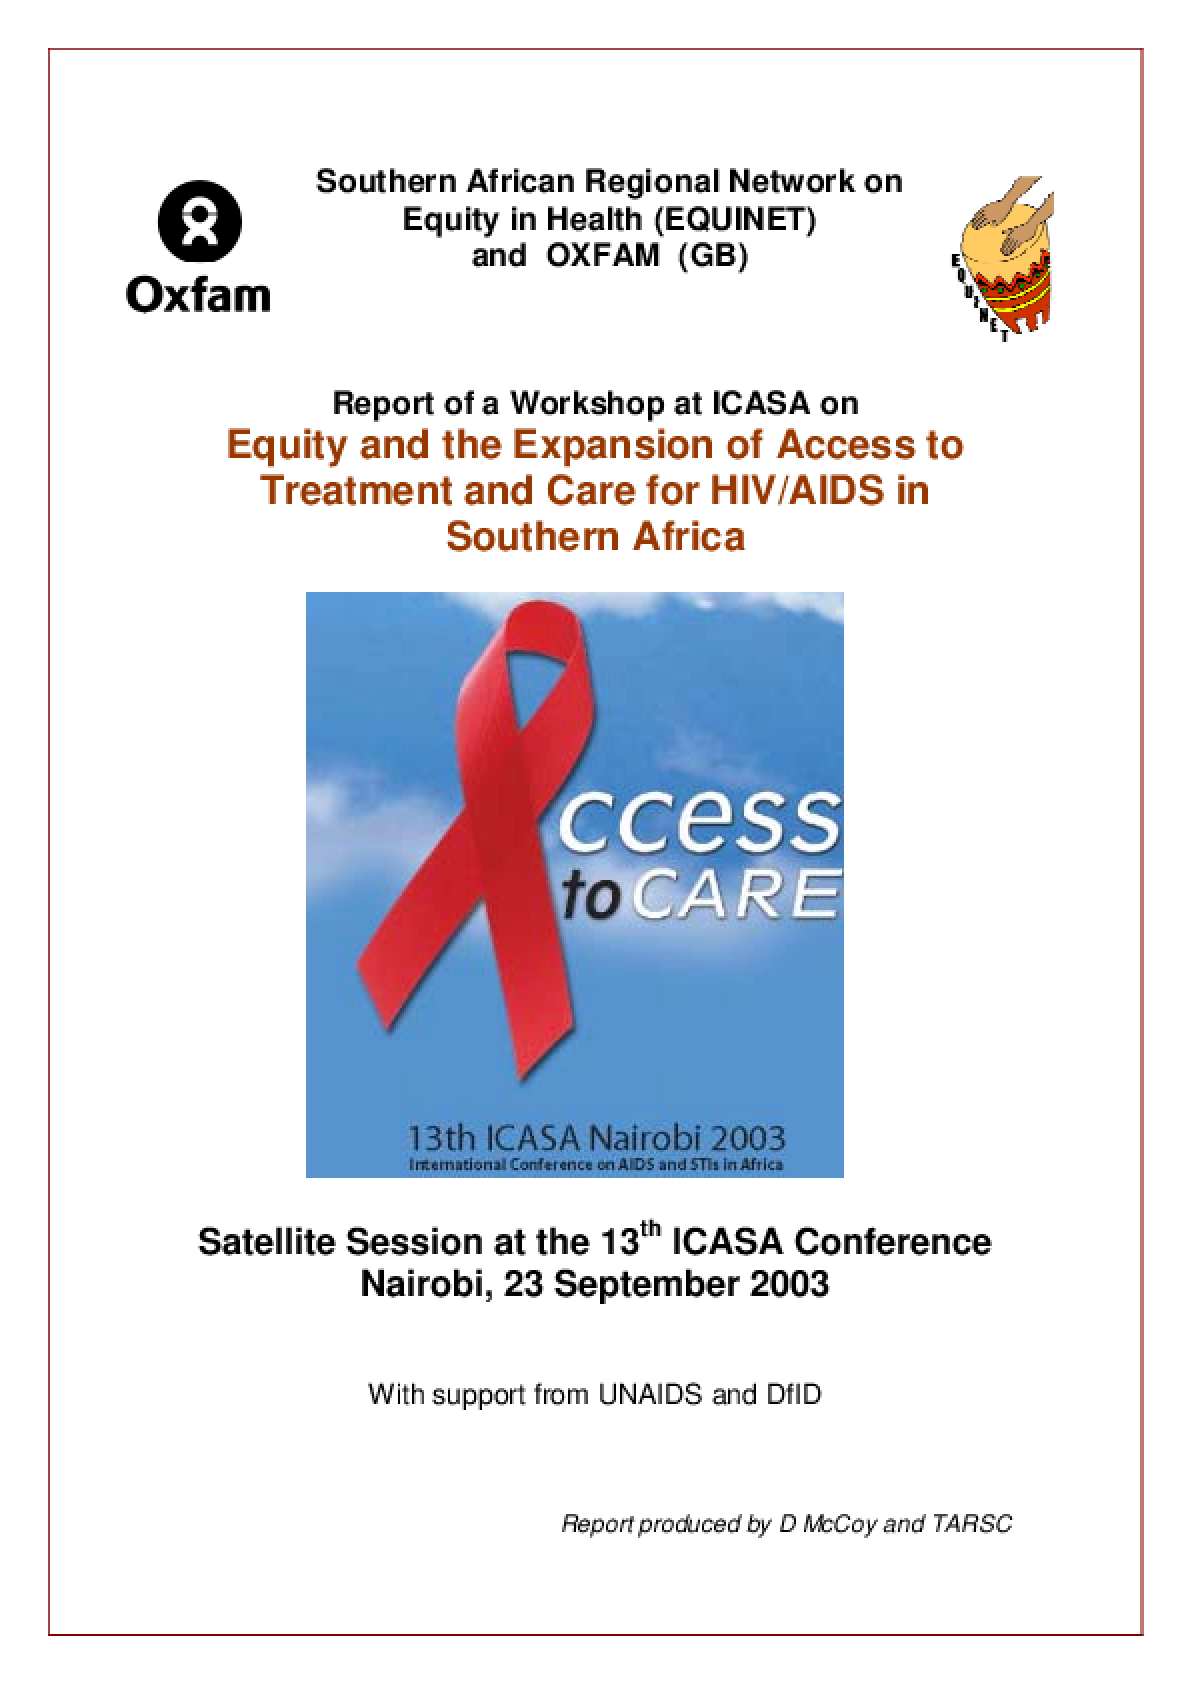 Equity and the Expansion of Access to Treatment and Care for HIV/AIDS in Southern Africa: Report of a workshop at ICASA